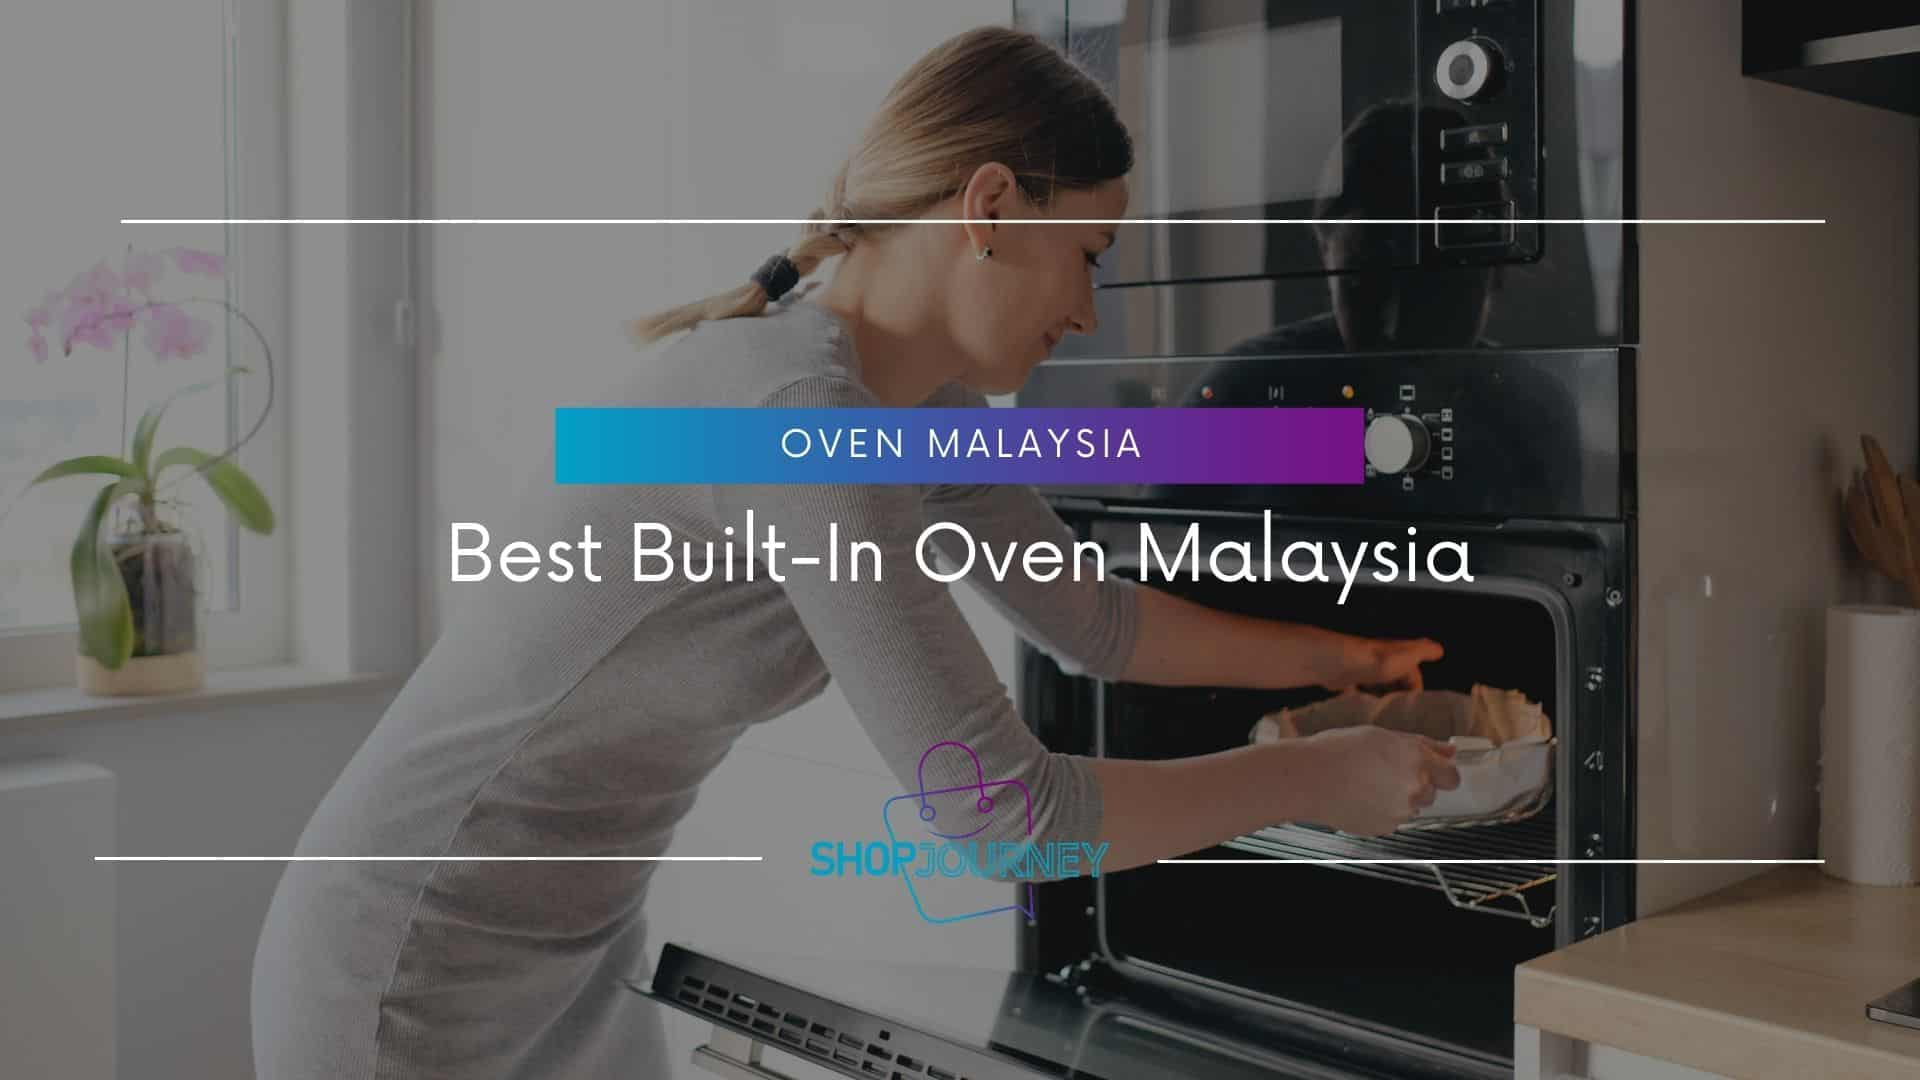 Best Built-In Oven Malaysia - Shop Journey